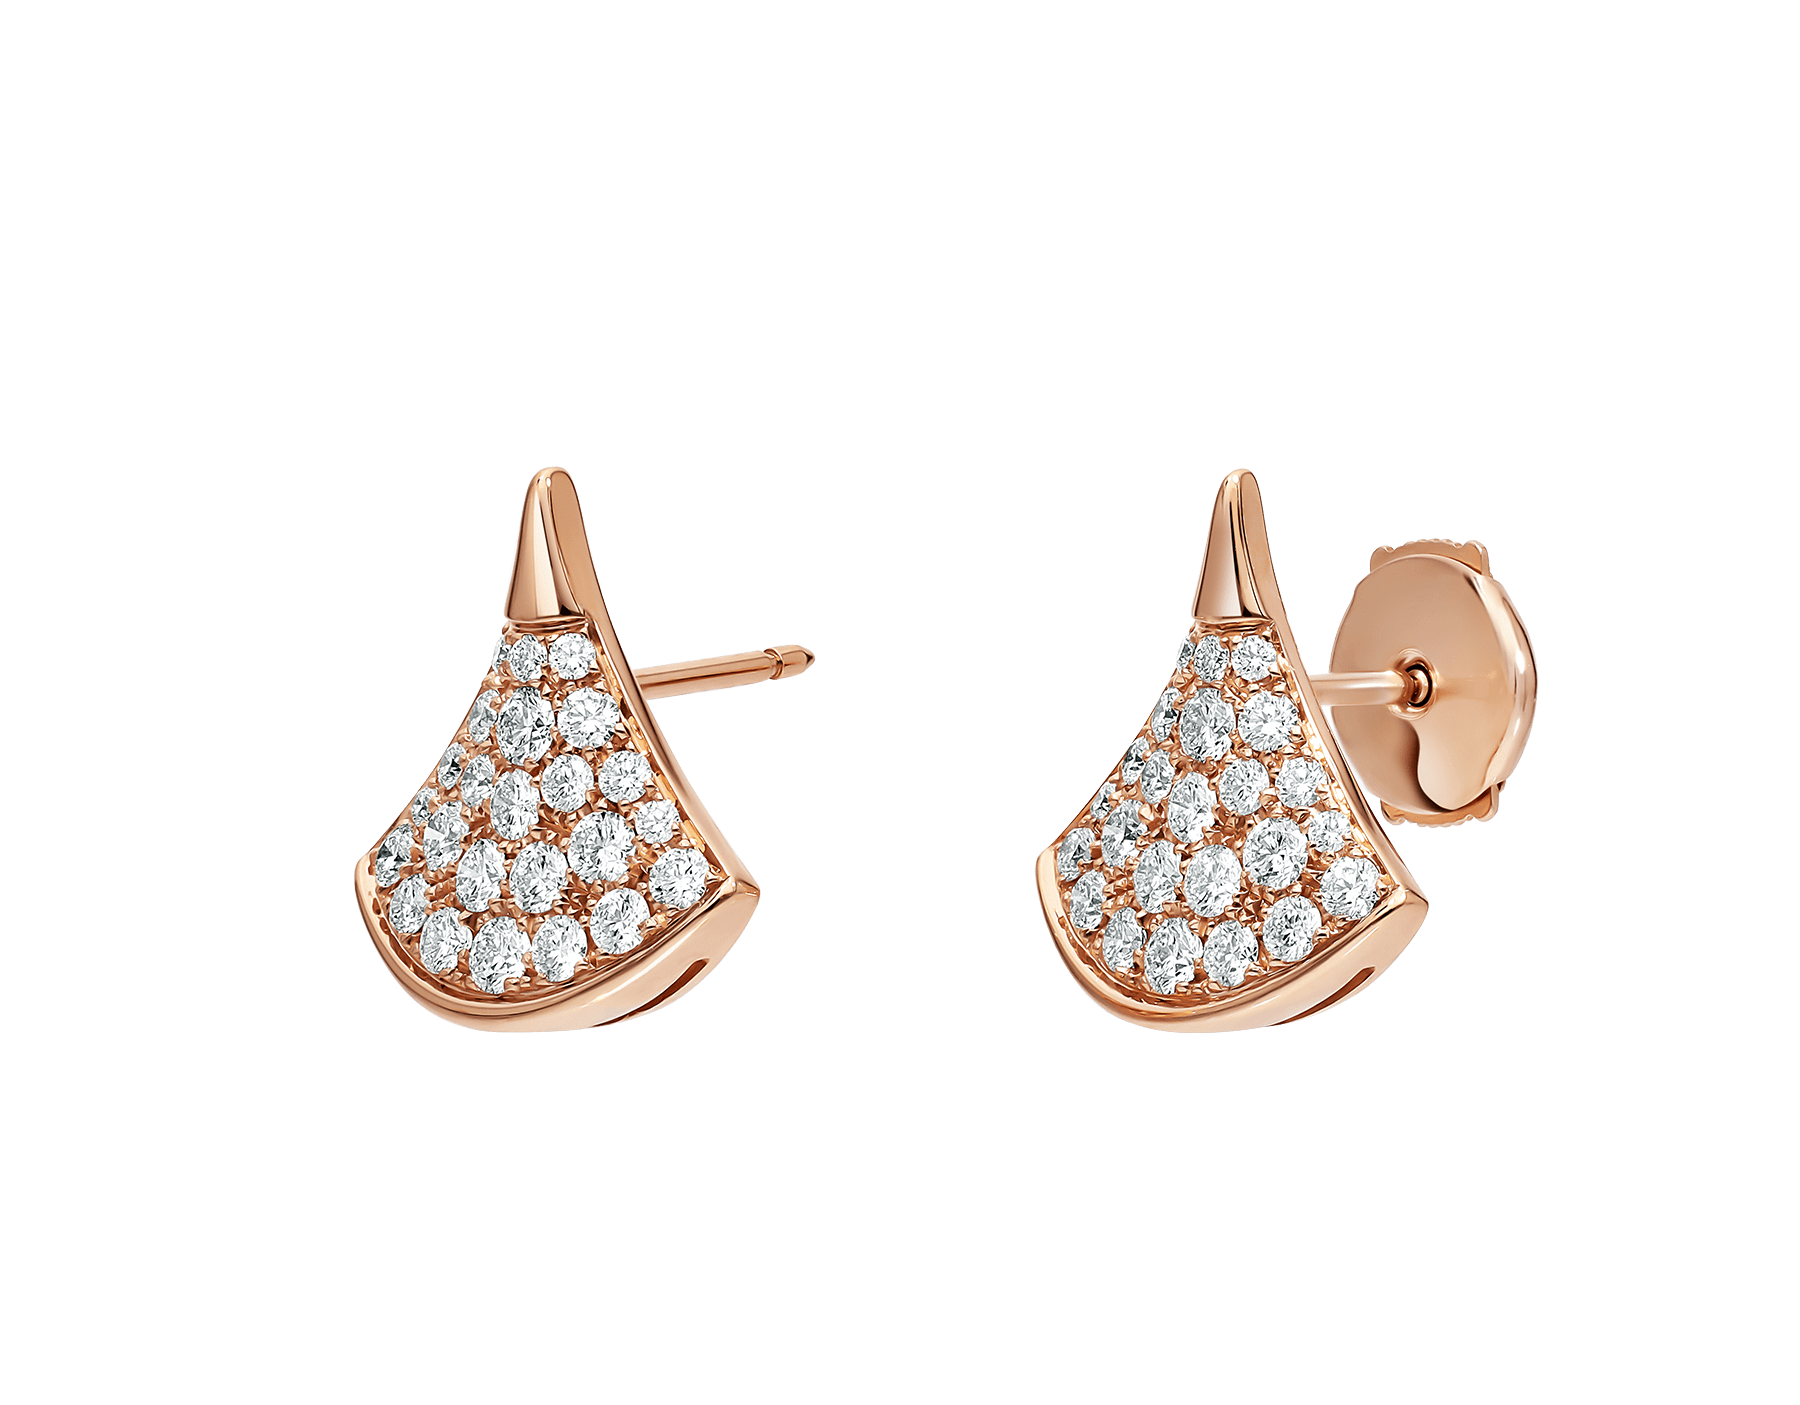 DIVAS' DREAM stud earrings in 18 kt rose gold, set with pavé diamonds (0.90 ct). 352601 image 2